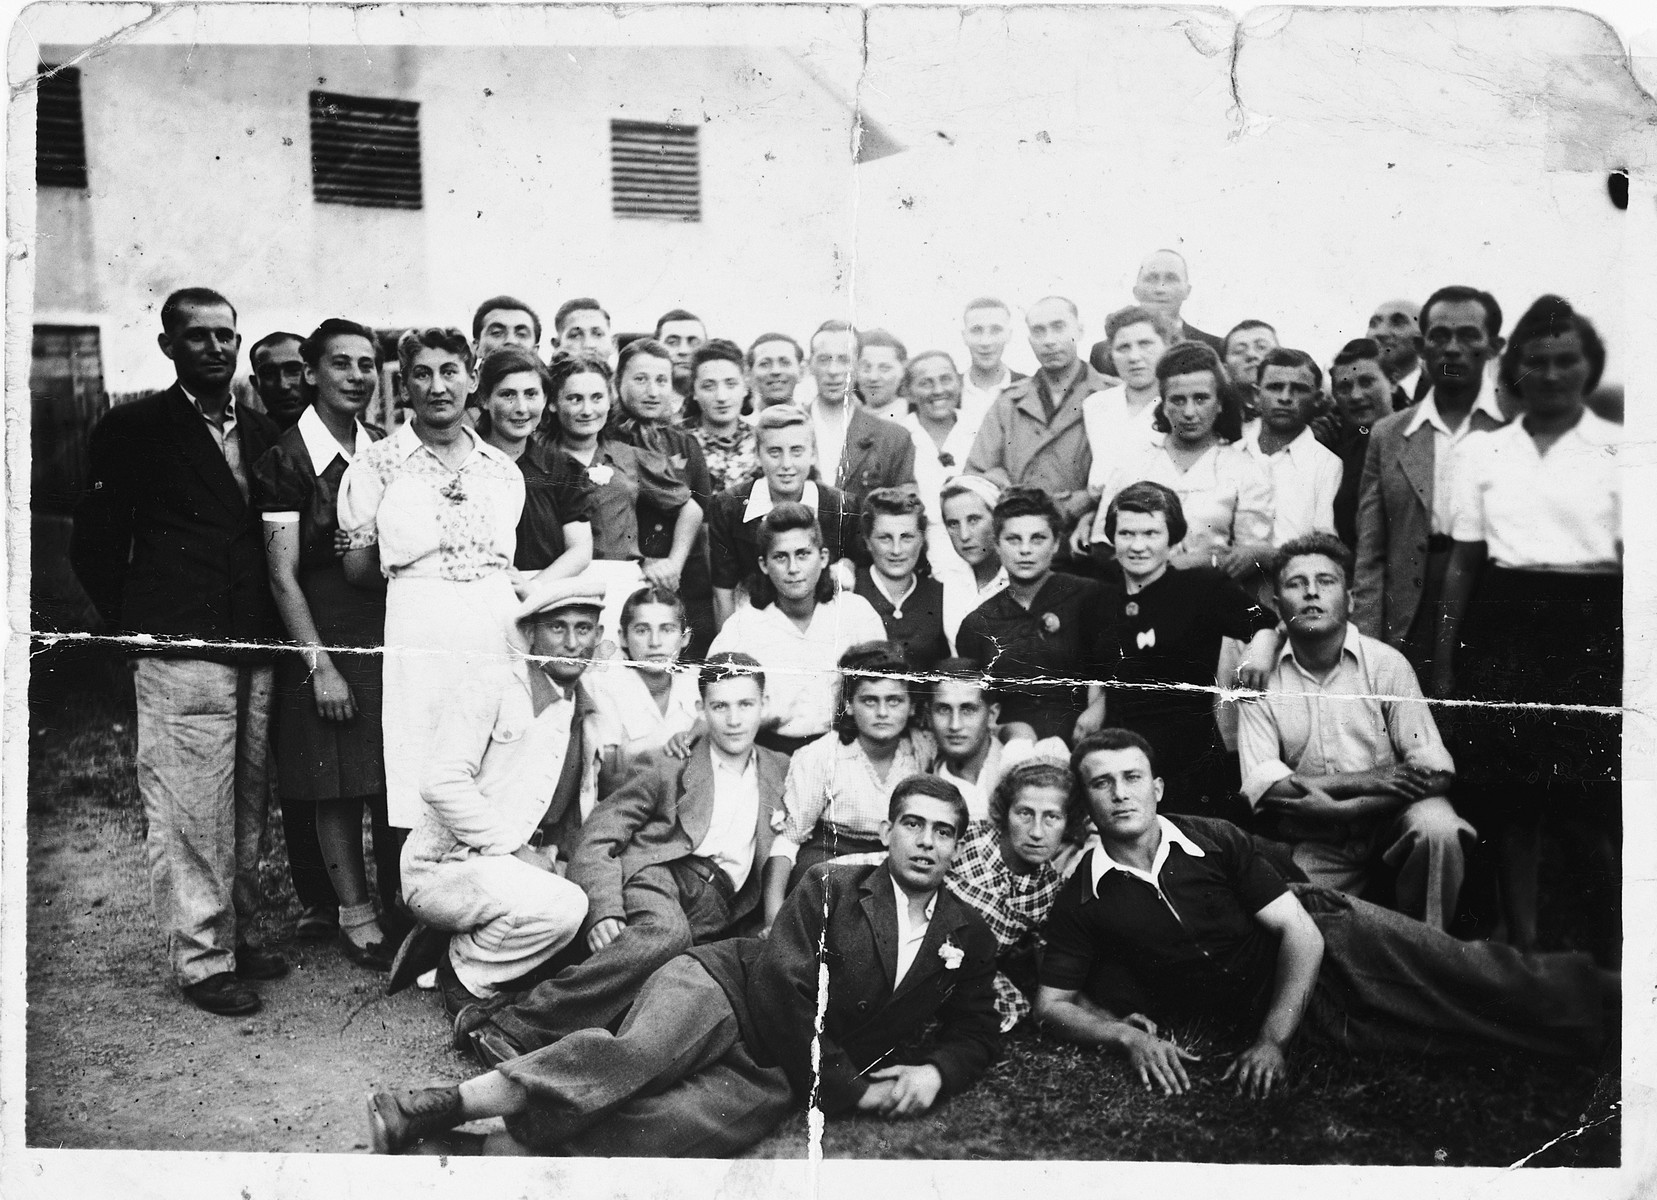 Group portrait of Jewish survivors who were liberated near Landsberg, Germany.